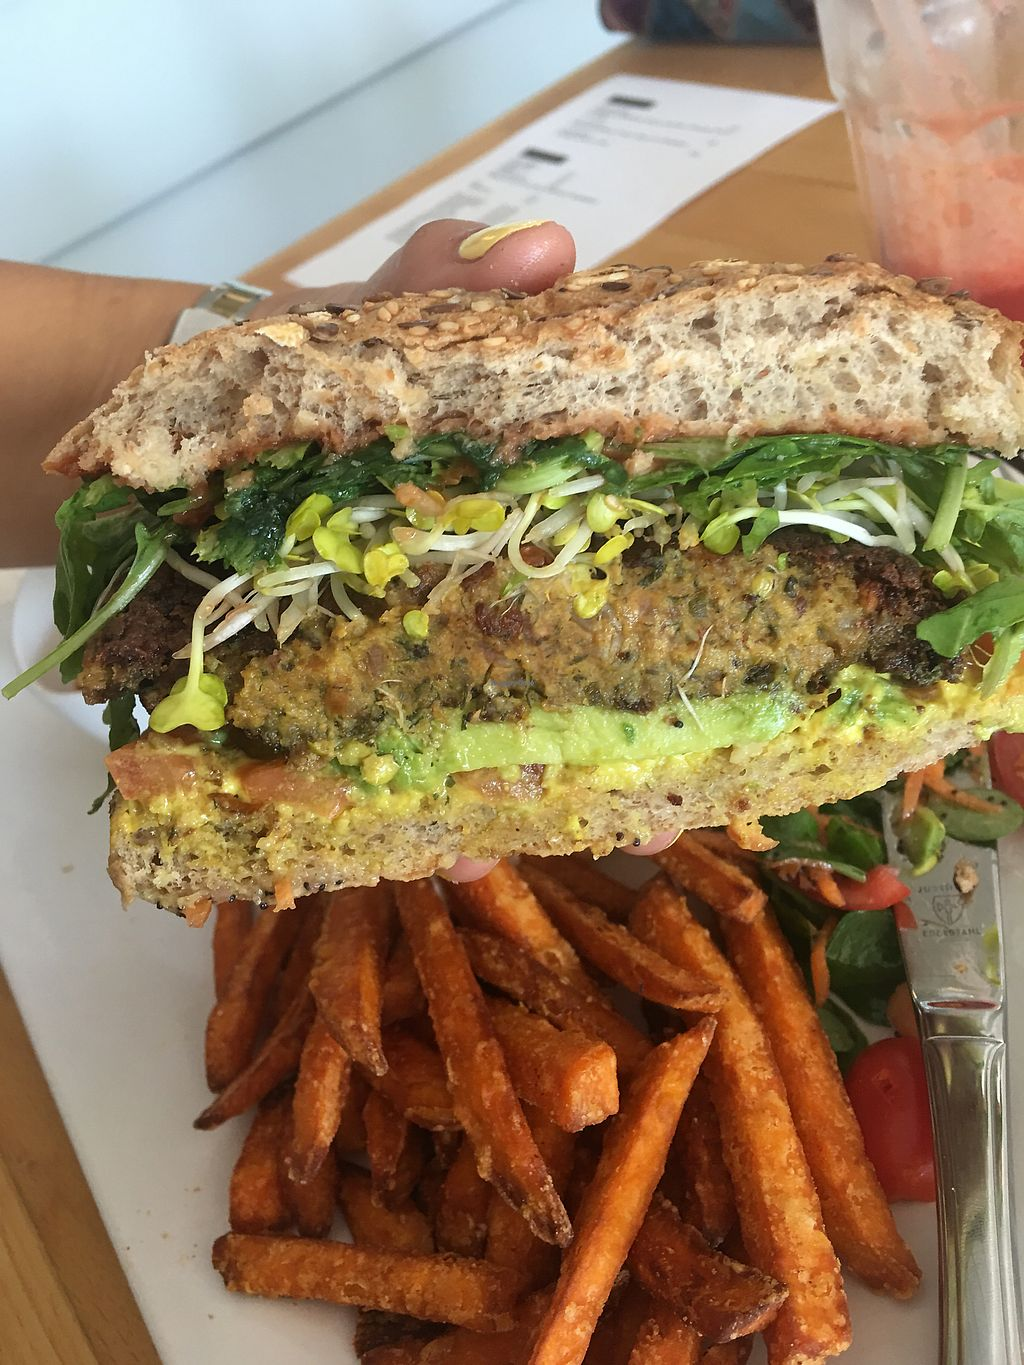 """Photo of innerluck  by <a href=""""/members/profile/edajoir"""">edajoir</a> <br/>Veggie burger with Avocado  <br/> September 16, 2017  - <a href='/contact/abuse/image/93866/304993'>Report</a>"""